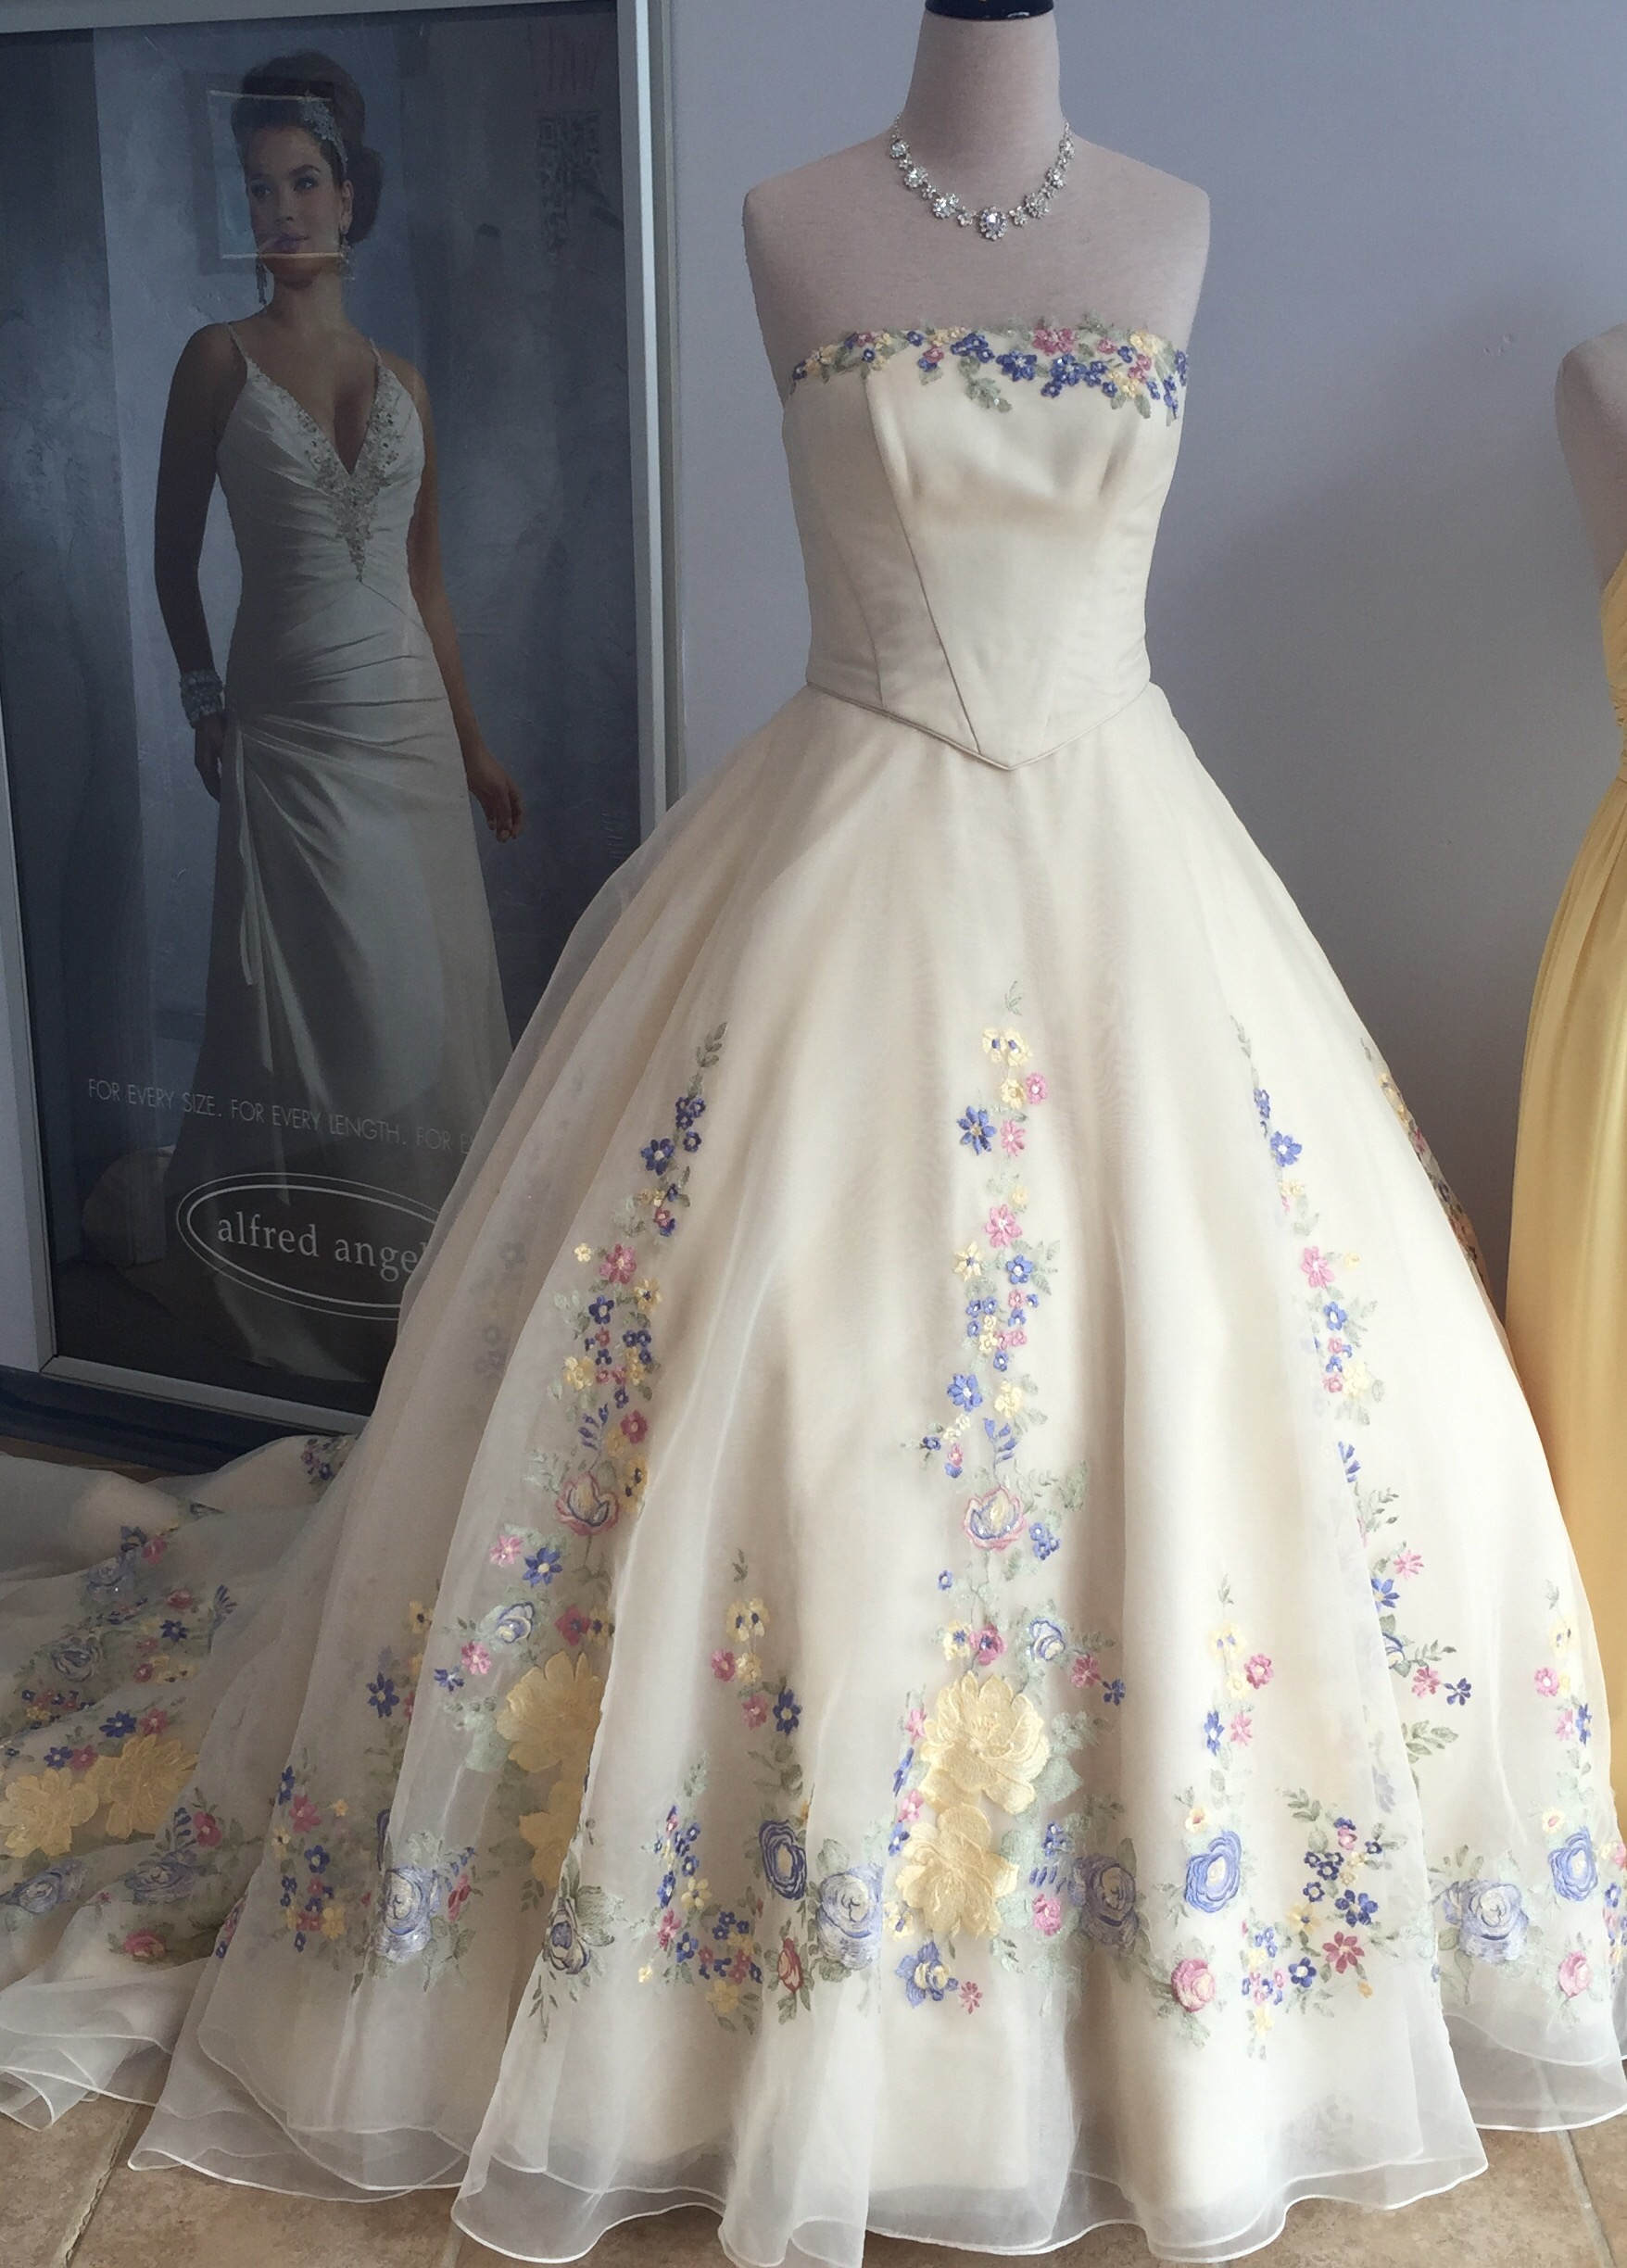 Alfred Angelo Cinderella Wedding Dress 2015. Rustic Bridesmaid Dresses Uk. Vintage Lace Wedding Dresses Canada. Glamorous Backless Wedding Dresses. 40 Winter Wedding Gowns You Ll Love. Light Blue Wedding Dresses. Inexpensive Backless Wedding Dresses. Sheath Wedding Dress Petticoat. Pink Wedding Dress Belts